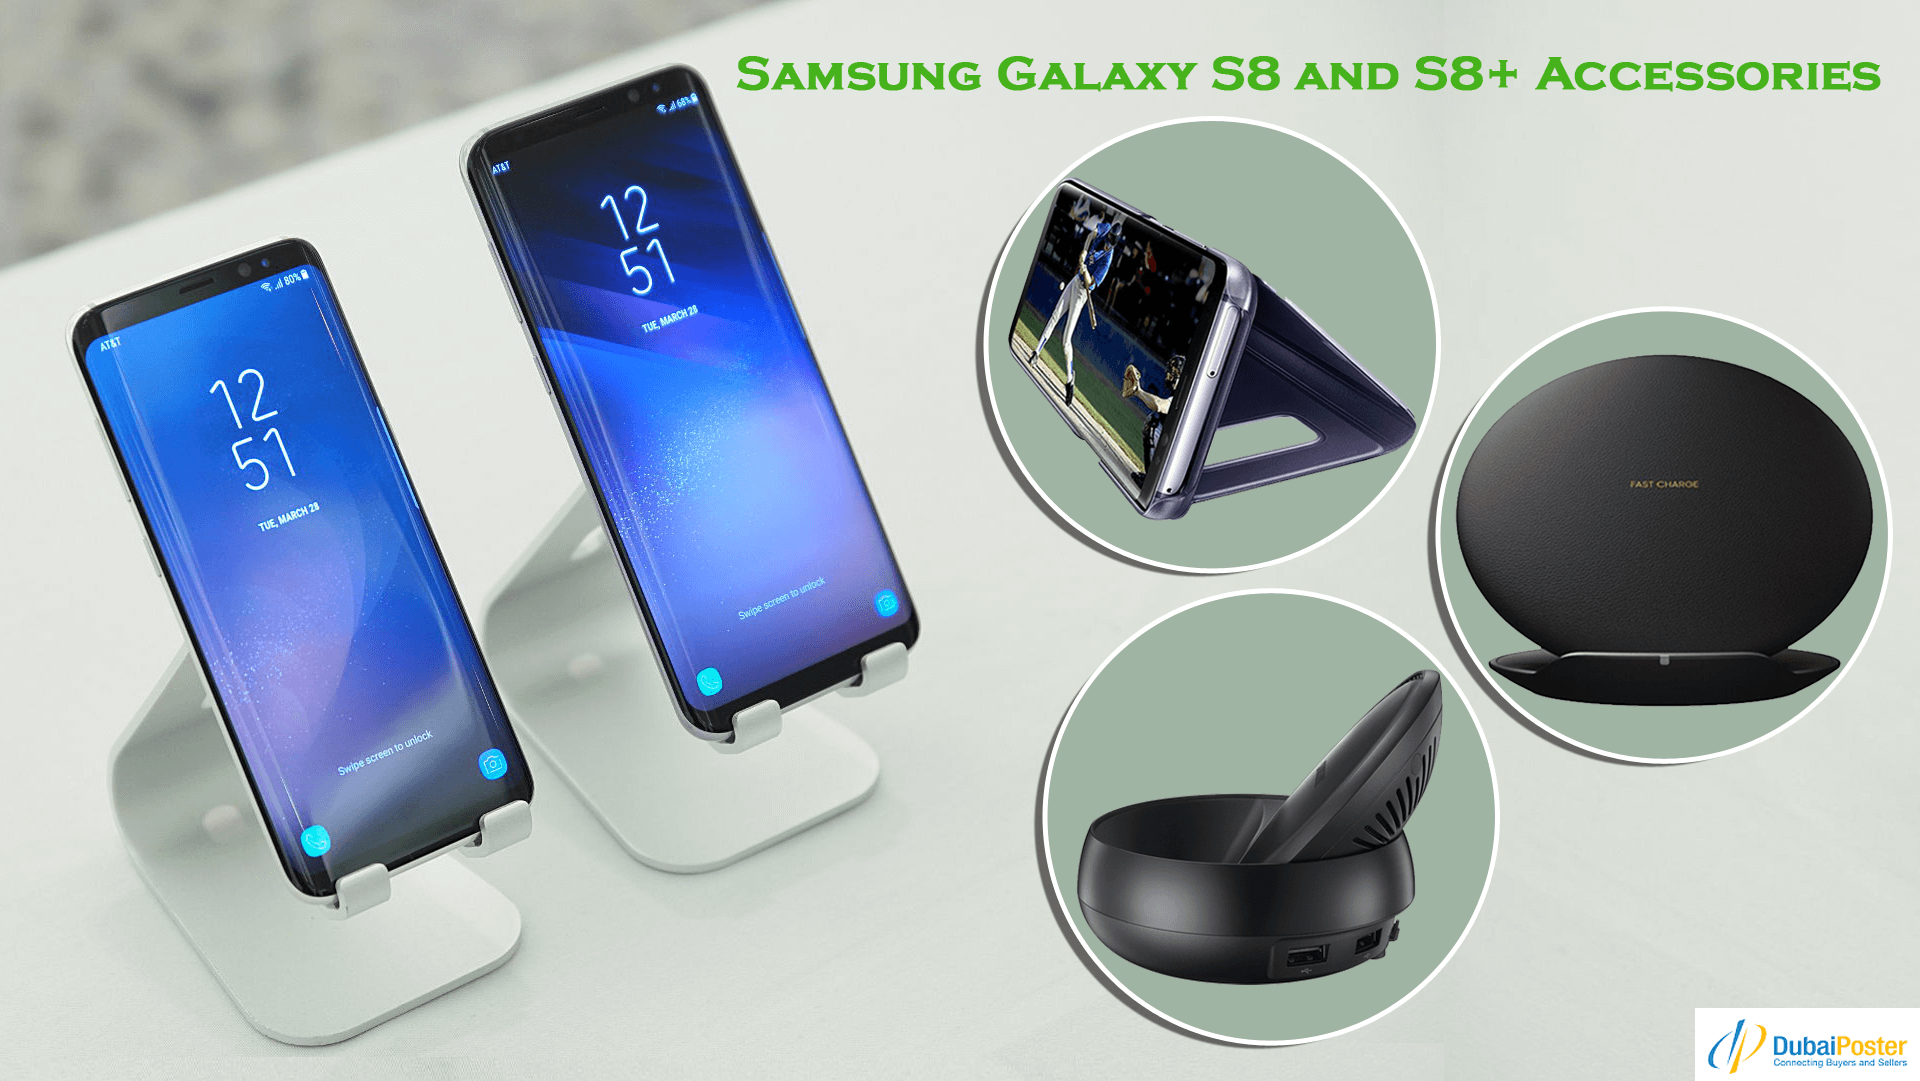 Where can I buy Samsung Galaxy S8/S8 Plus accessories in Dubai? - Quora